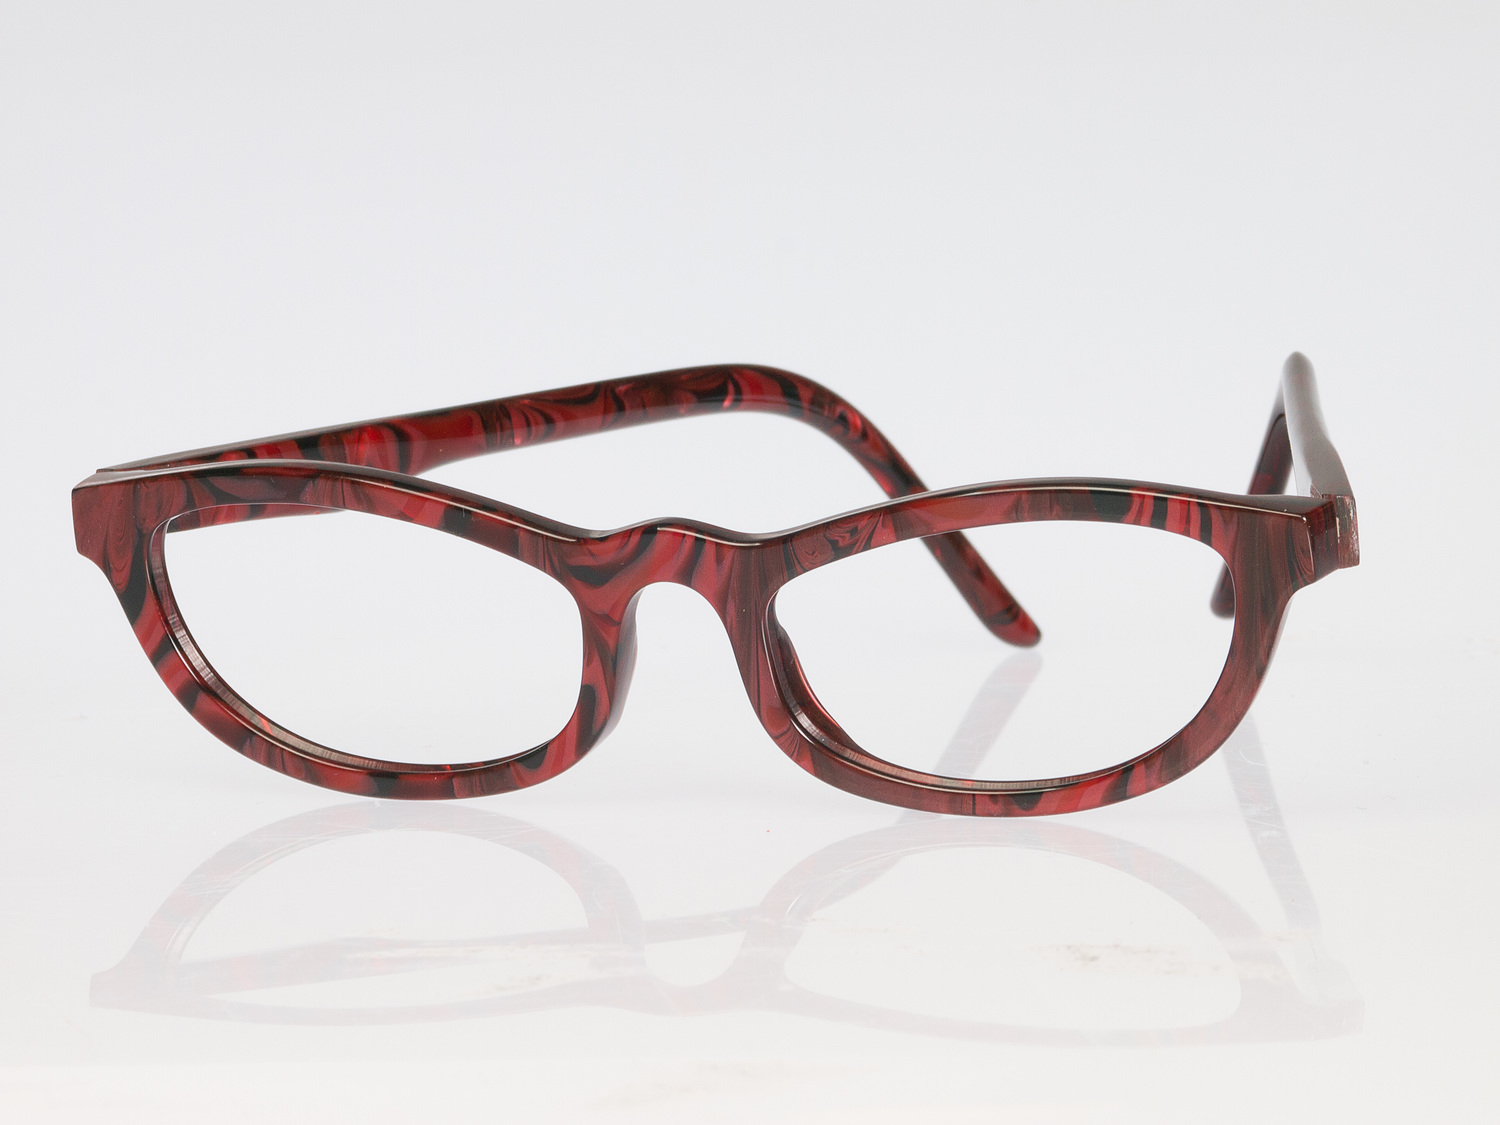 Indivijual-Custom-Glasses-21.jpg